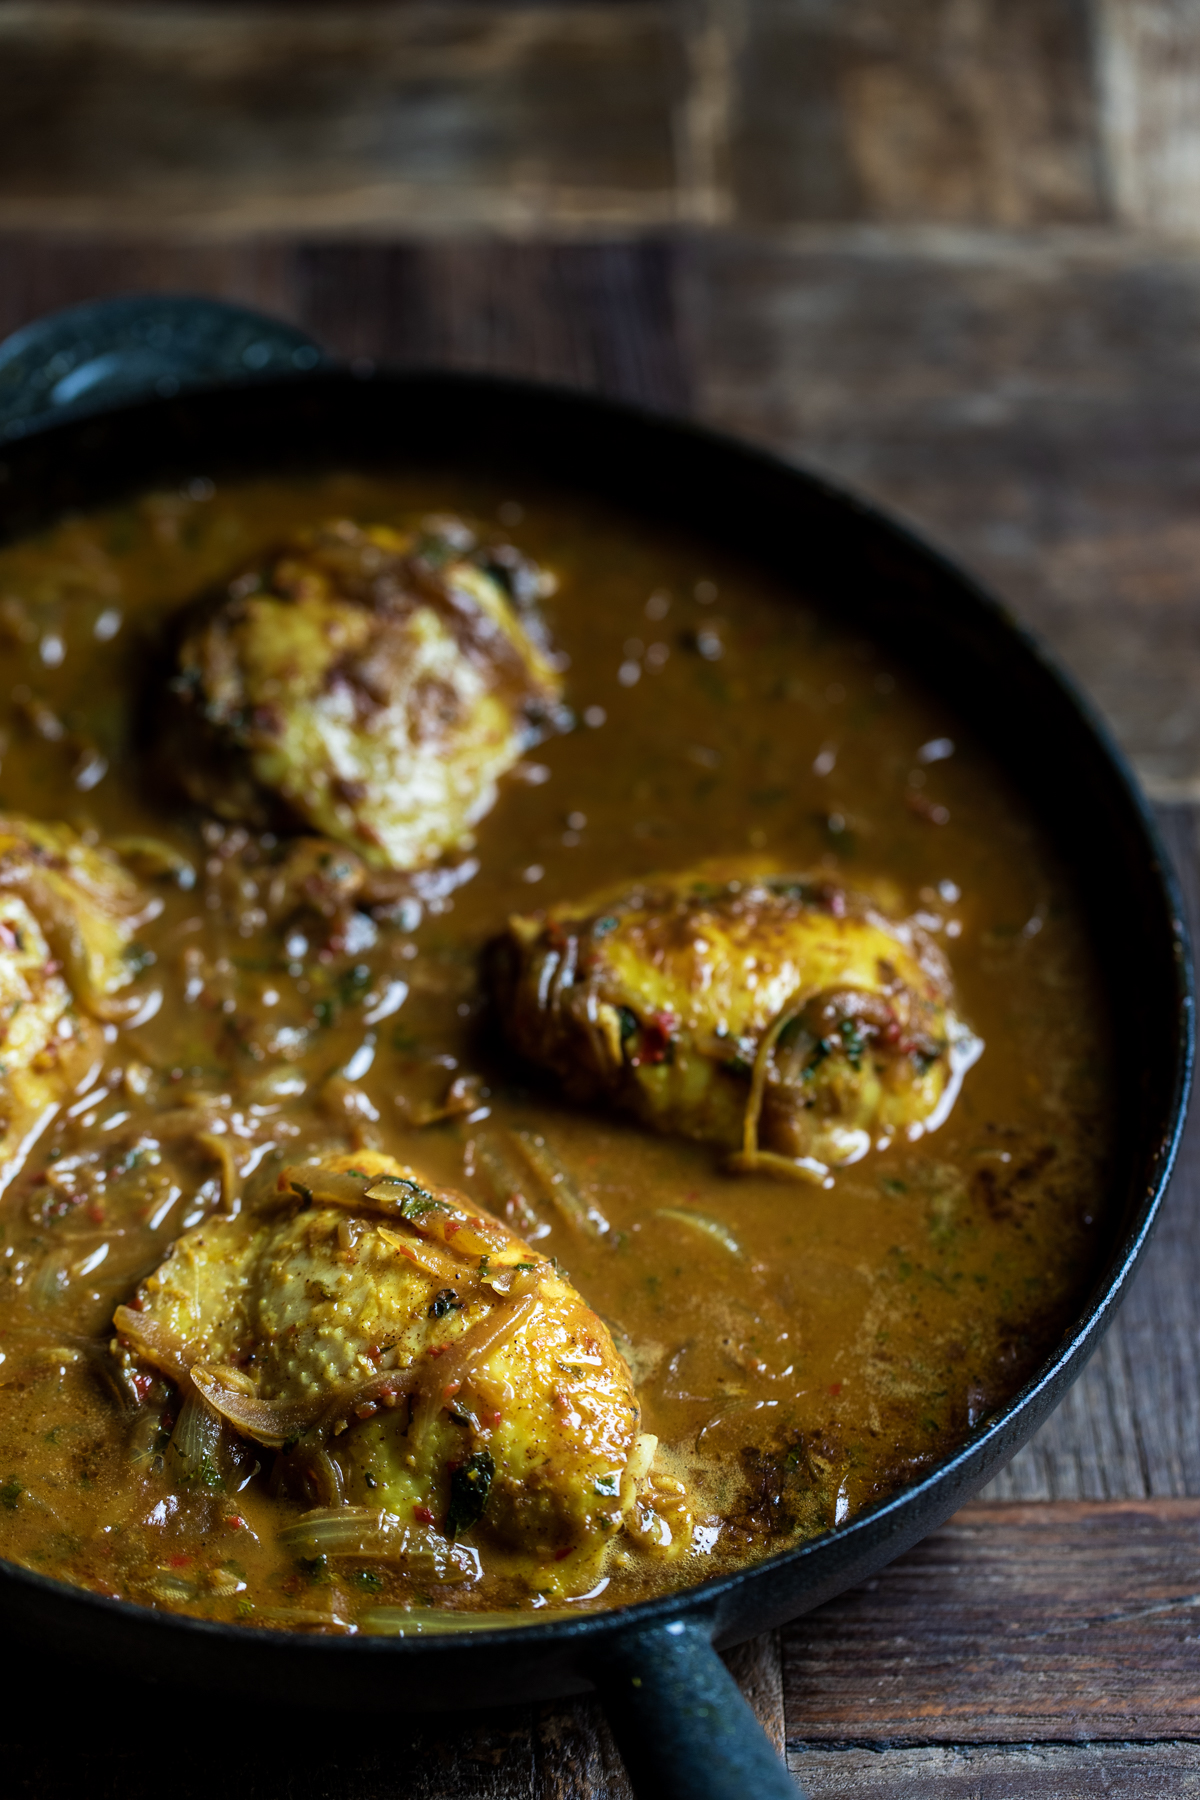 Malaysian chicken thigh curry cooking in a black cast iron pan.